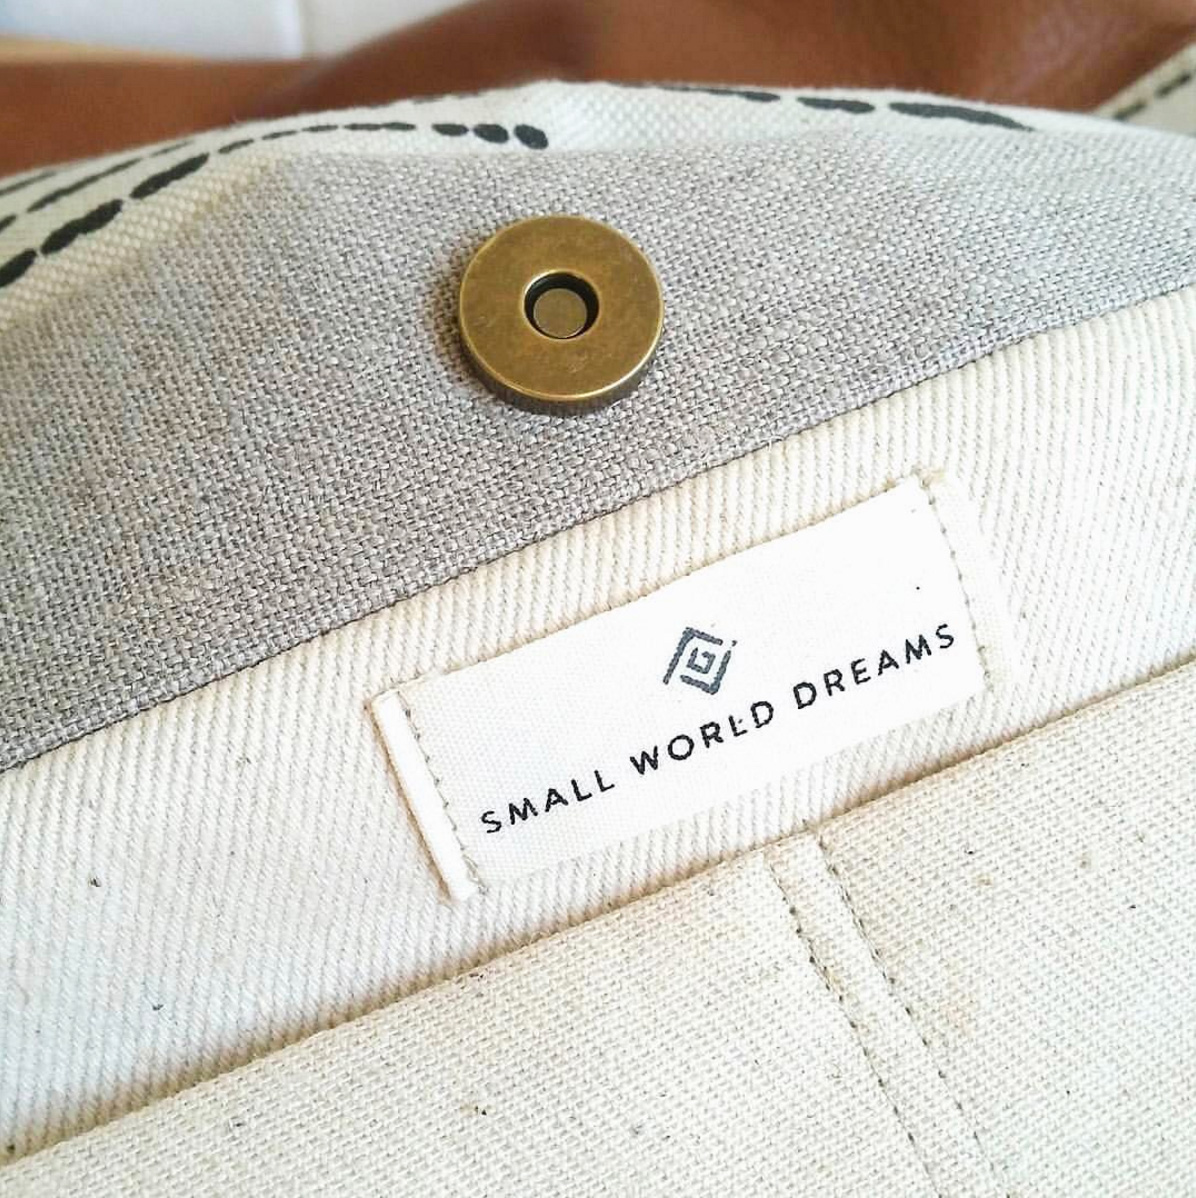 Stitched label with Small World Dreams logo